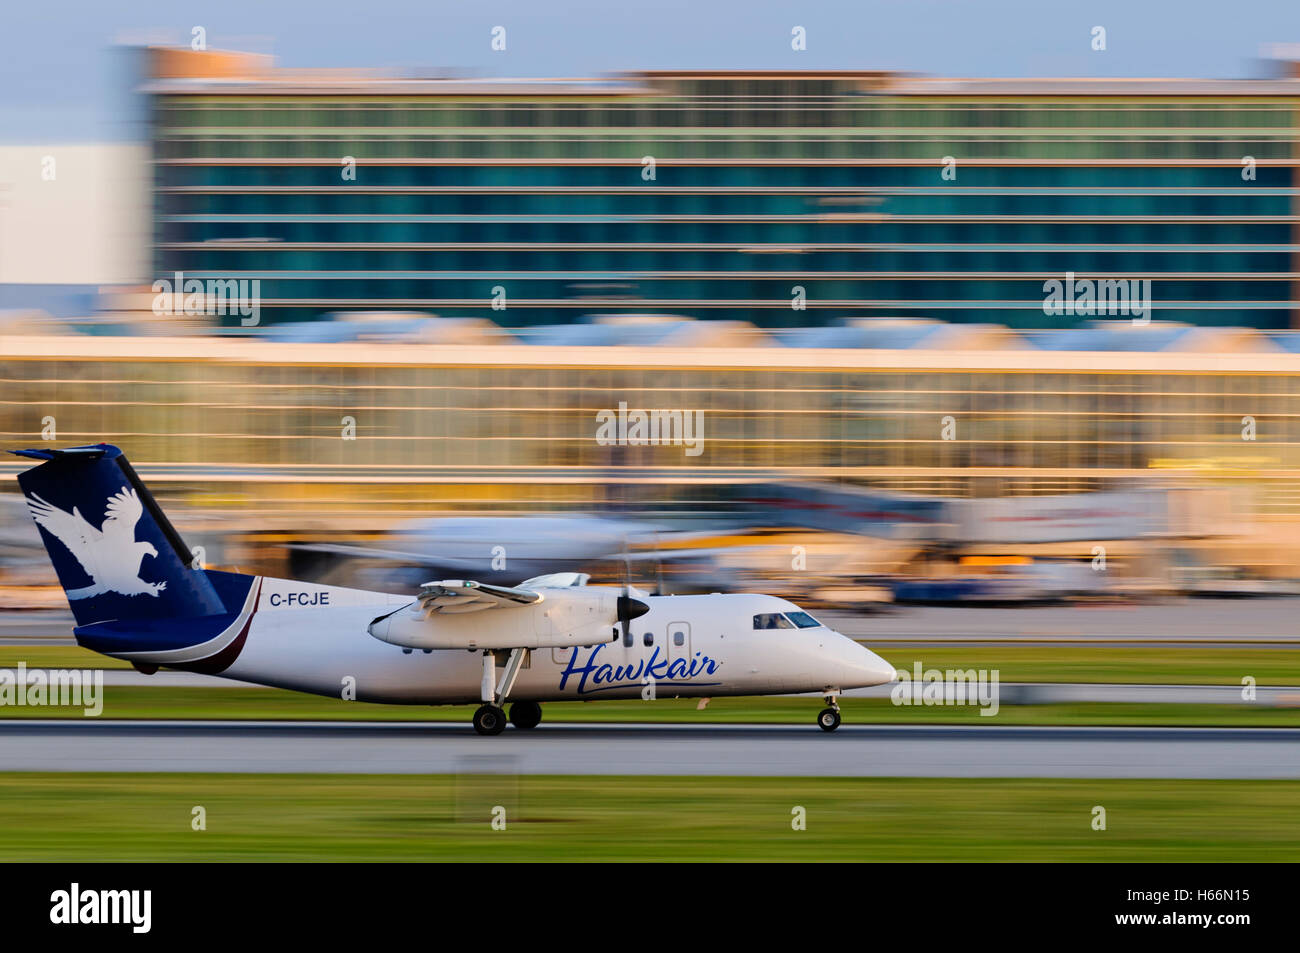 A Hawkair Aviation Dash 8 (C-FCJE) twin engine turboprop regional airliner lands at Vancouver International Airport, - Stock Image